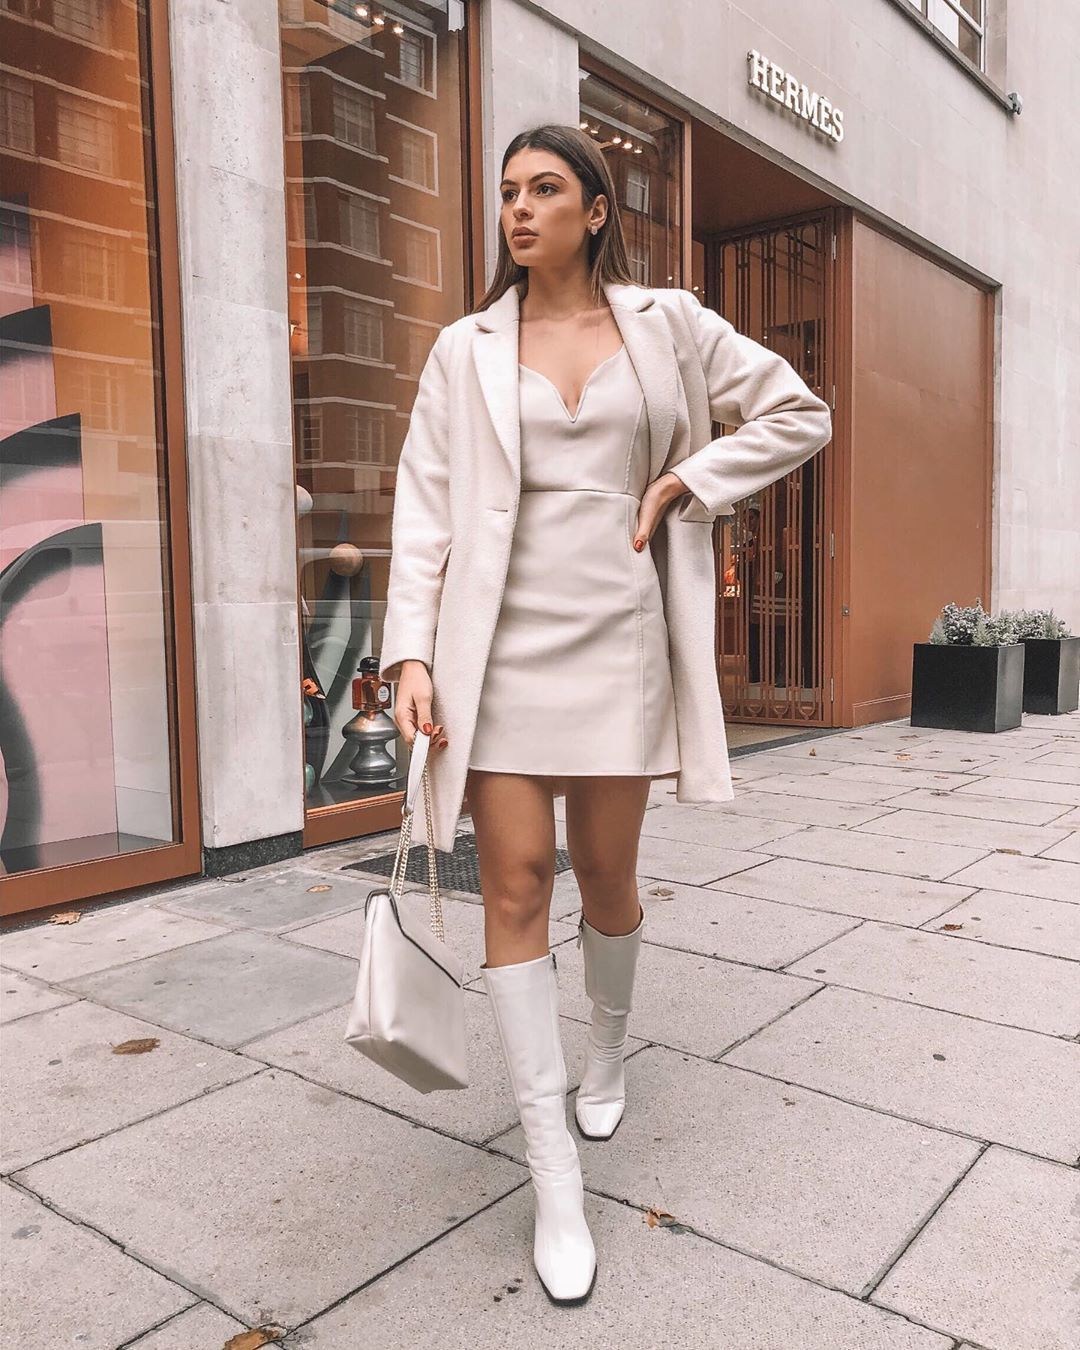 All White Outfit Autumn Style Cream Coat Knee High Boots And Leather Looking Dress Offwhite Autum White Boots Outfit Trendy Fall Outfits Cher Outfits [ 1350 x 1080 Pixel ]